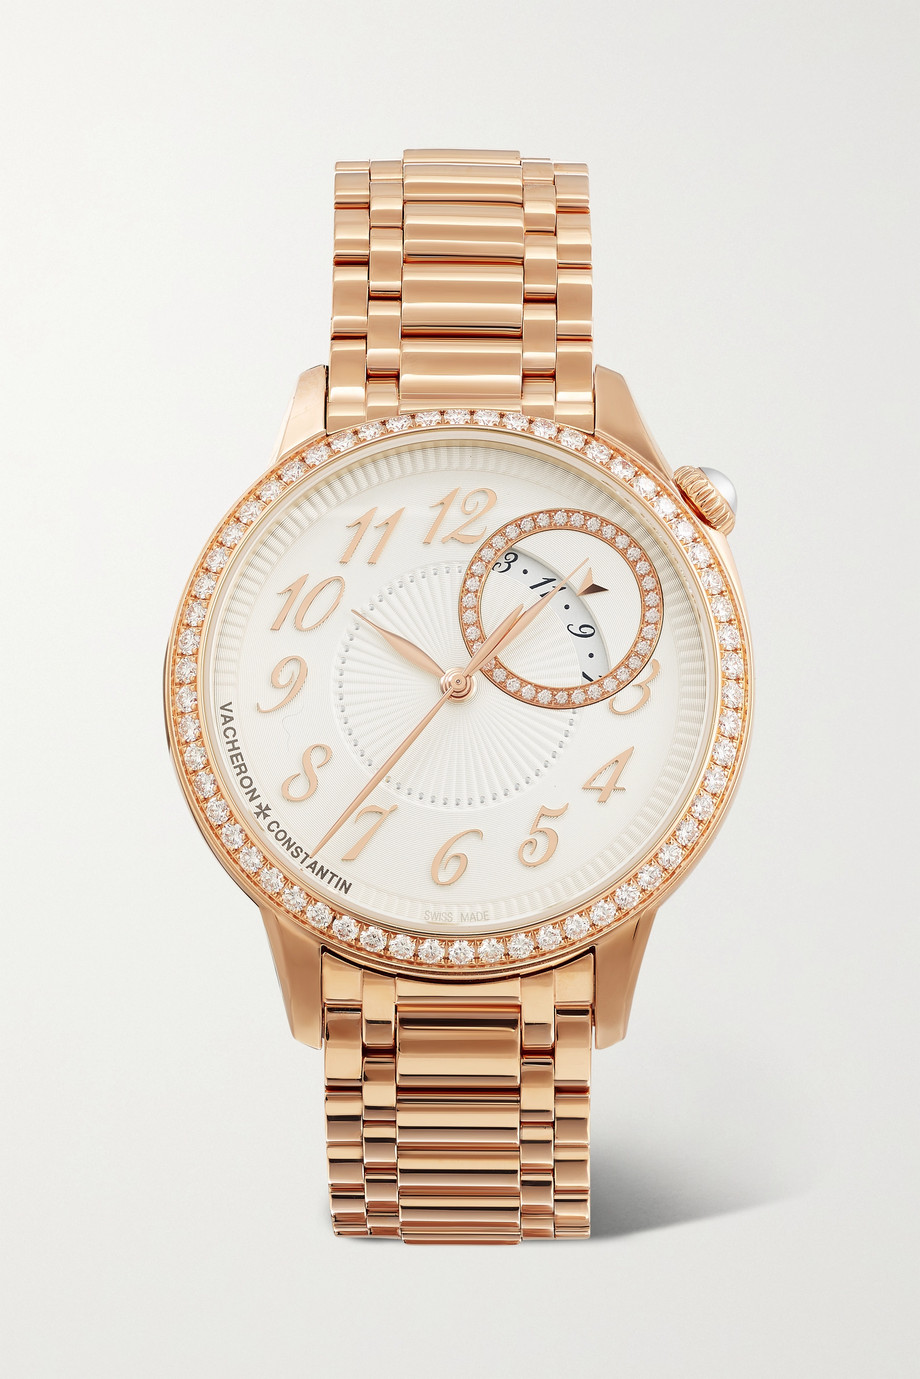 Vacheron Constantin Egérie Automatic 35mm 18-karat rose gold and diamond watch